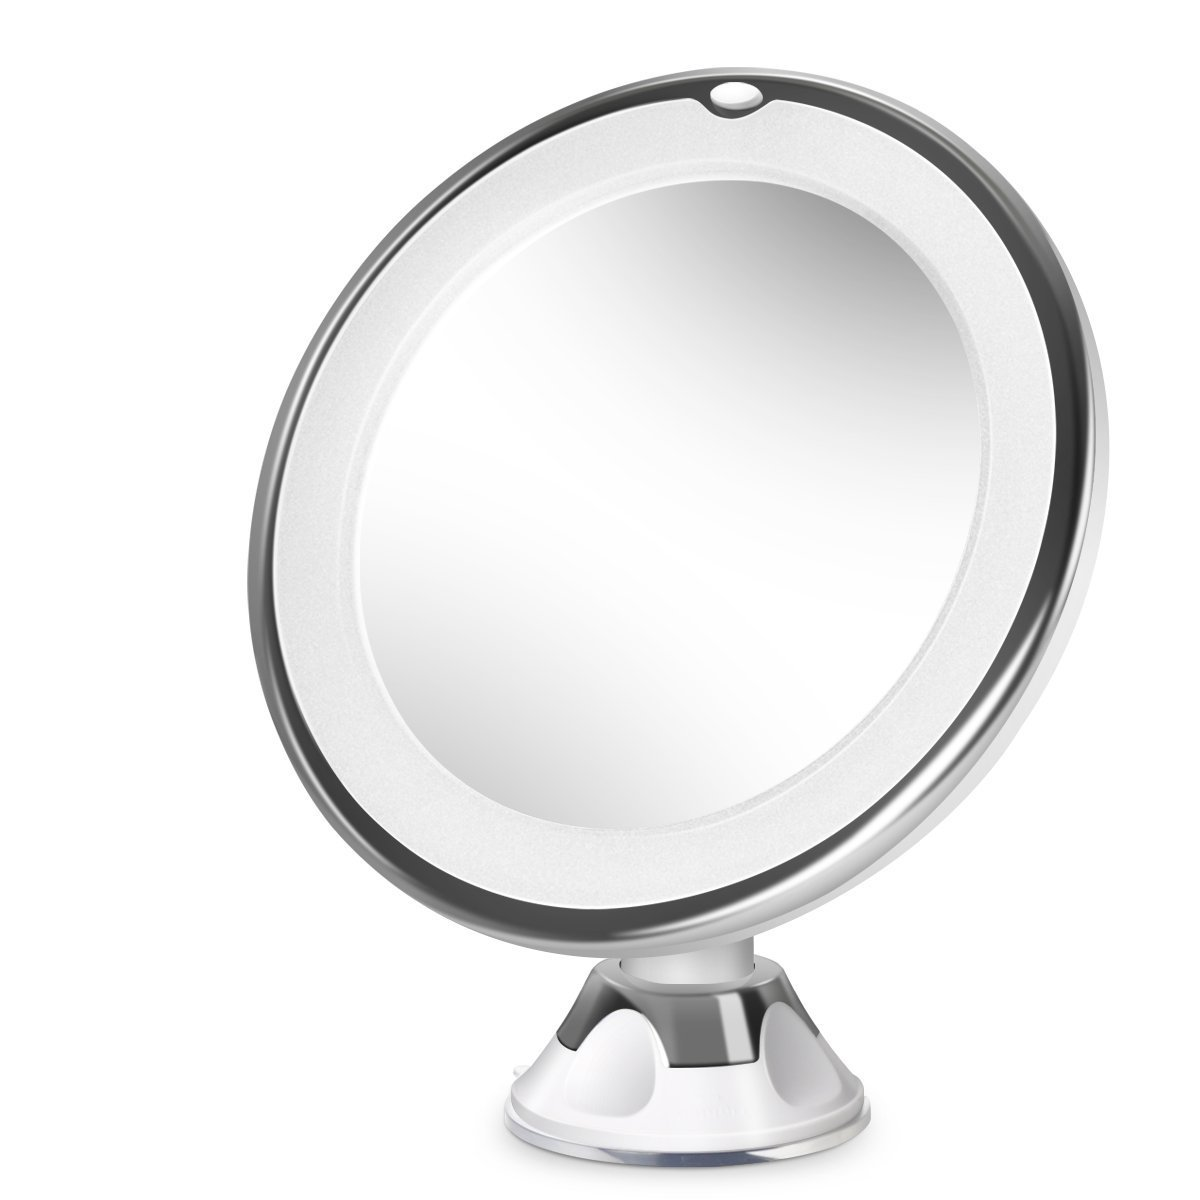 Beautural 10X Magnifying Lighted Vanity Makeup Mirror with Natural White LED, 360 Degree Swivel Rotation and Suction Cup,8 inches 1byone Products Inc.